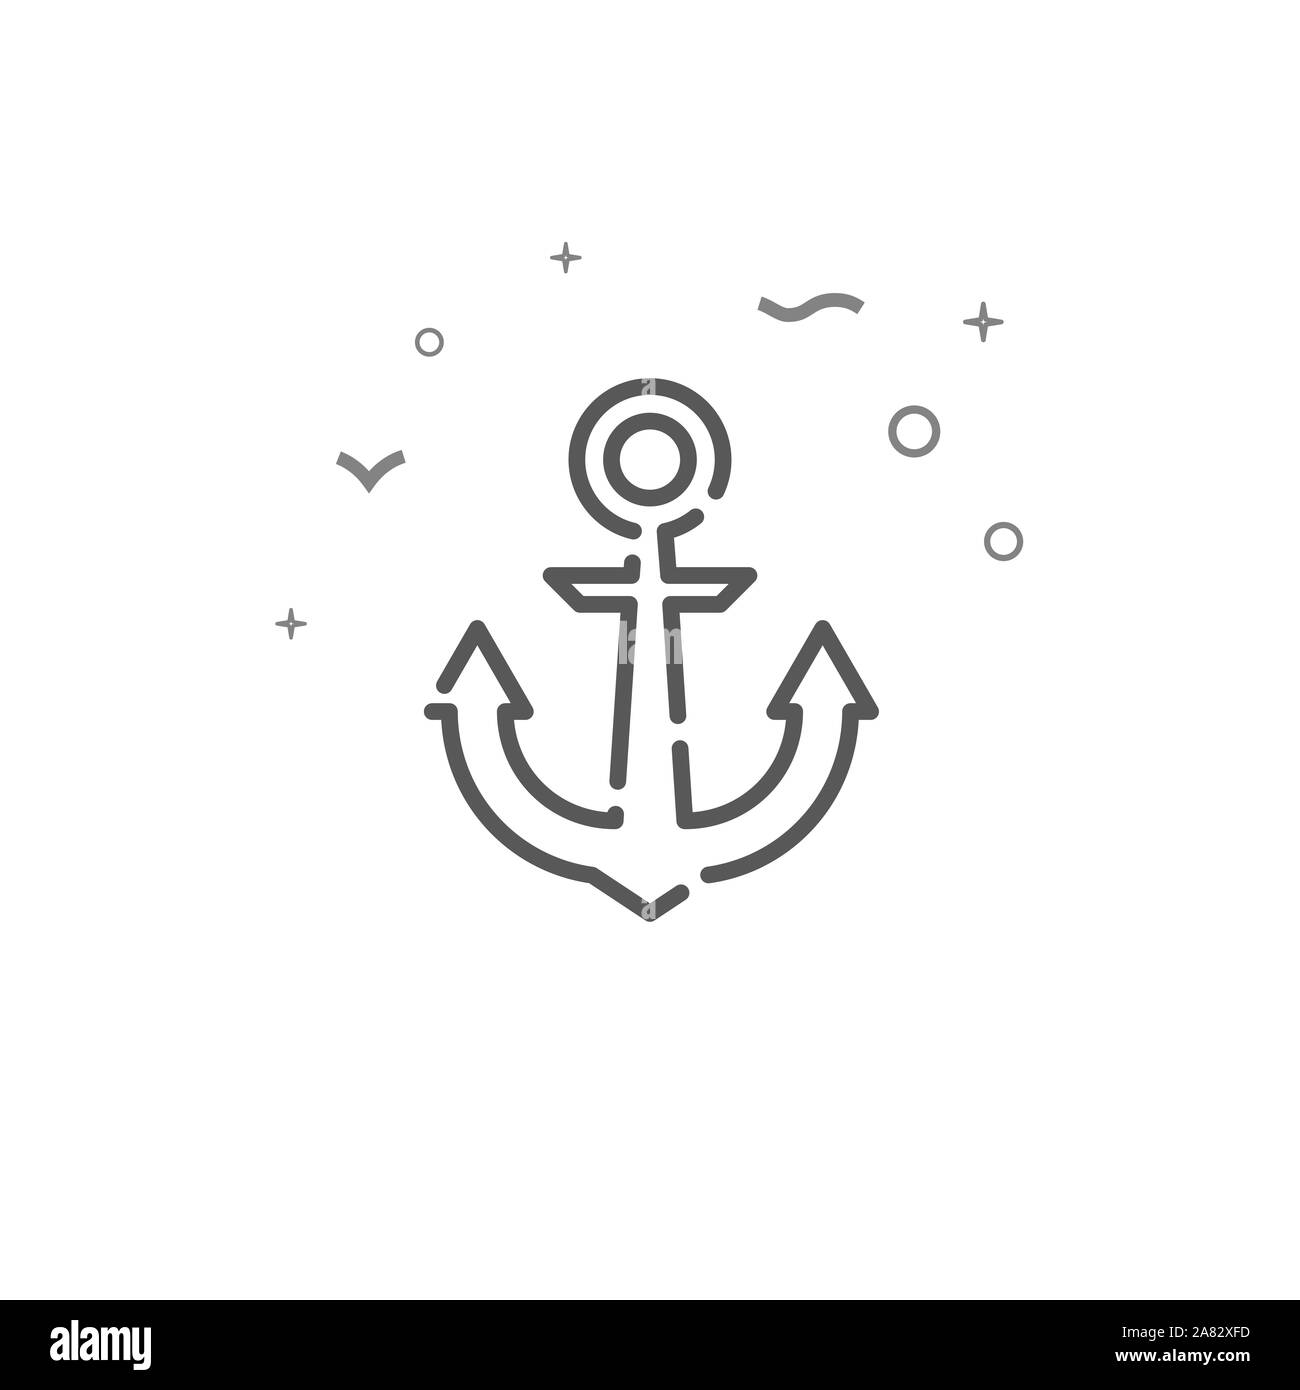 Ship anchor simple line icon. Ship anchor symbol, pictogram, sign. Light background. Stock Photo